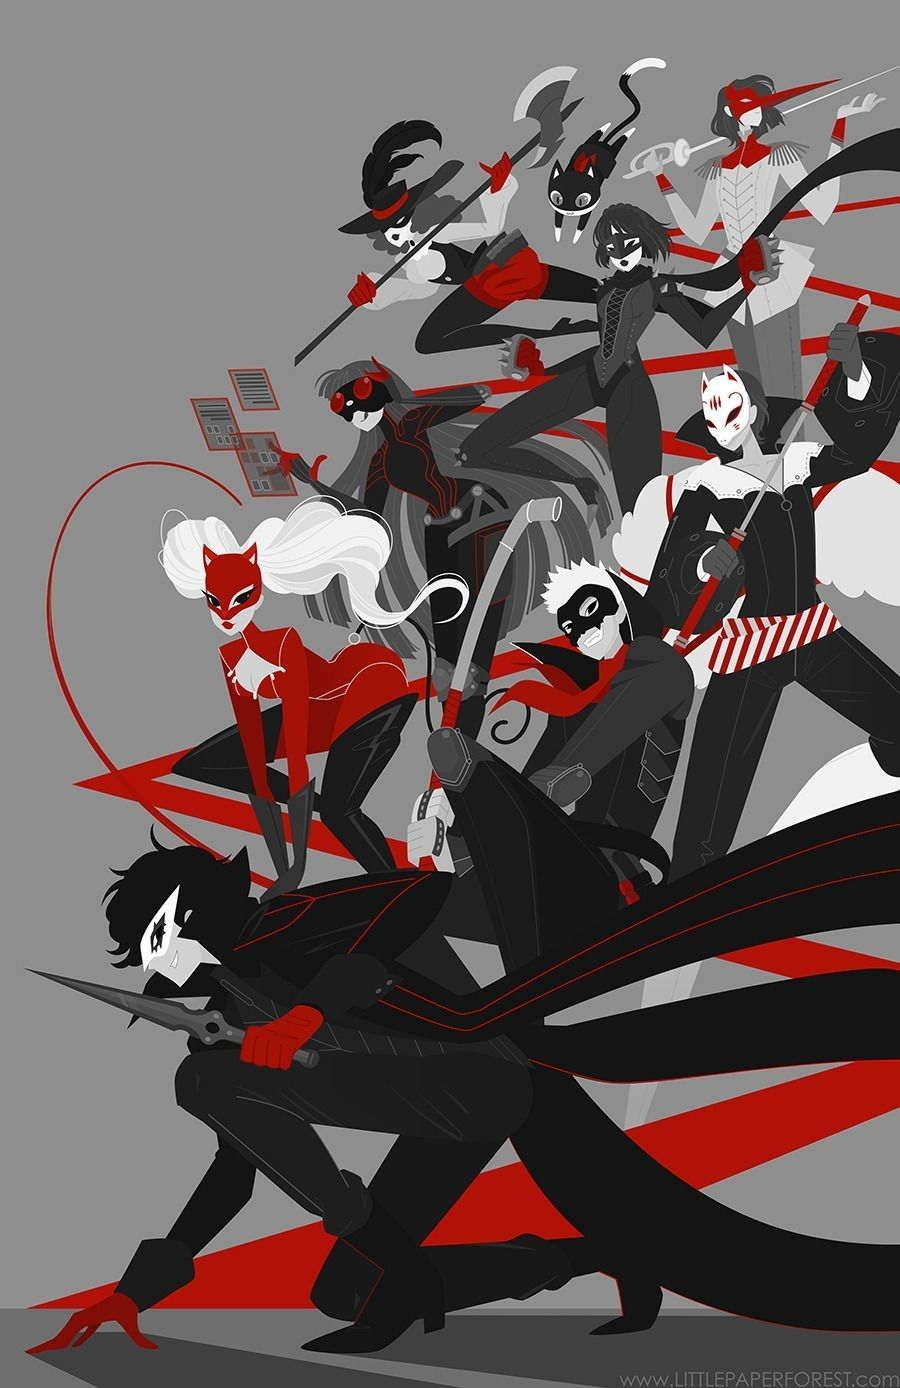 Pin by Andrew Richard on Wallpapers in 2020 Persona 5